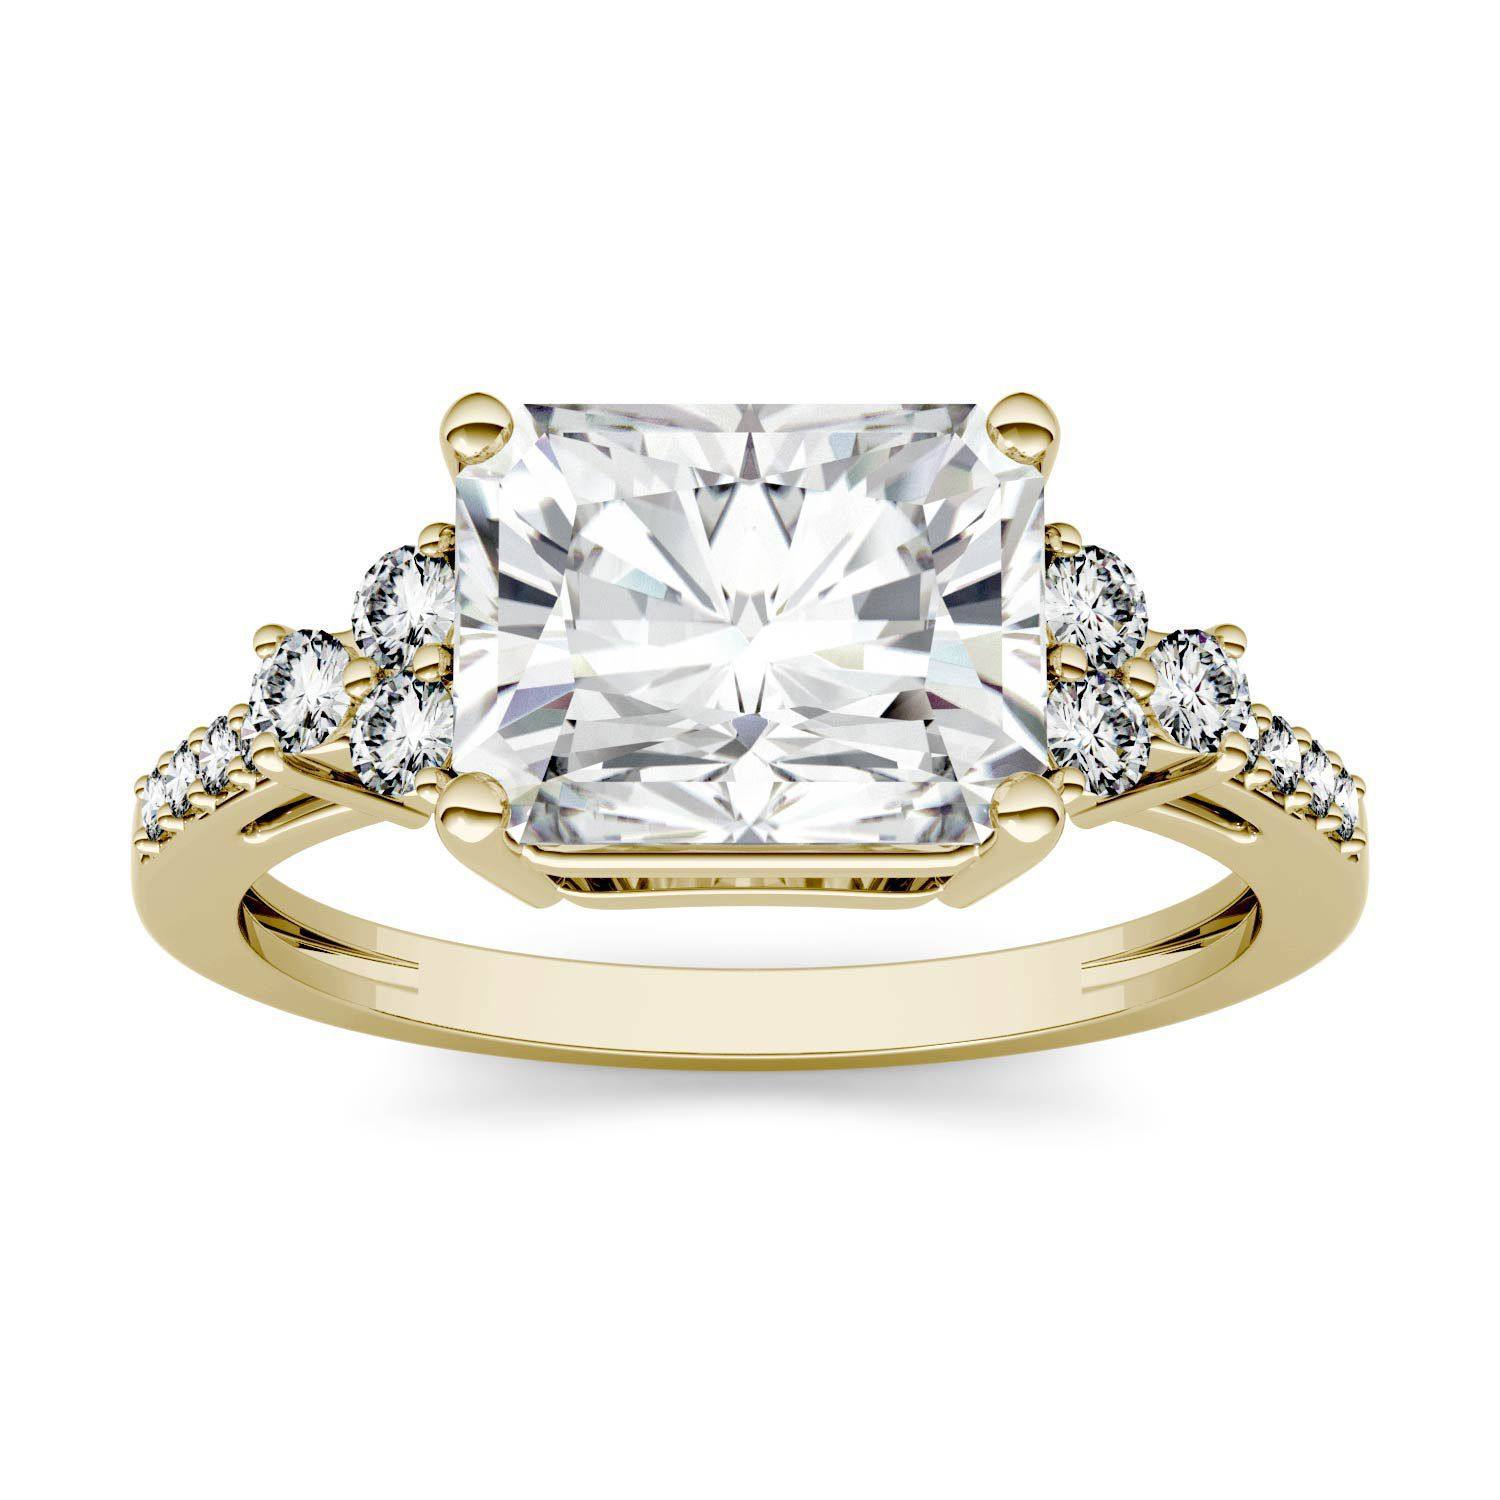 Radiant-cut diamond engagement ring with yellow gold band on a white background.